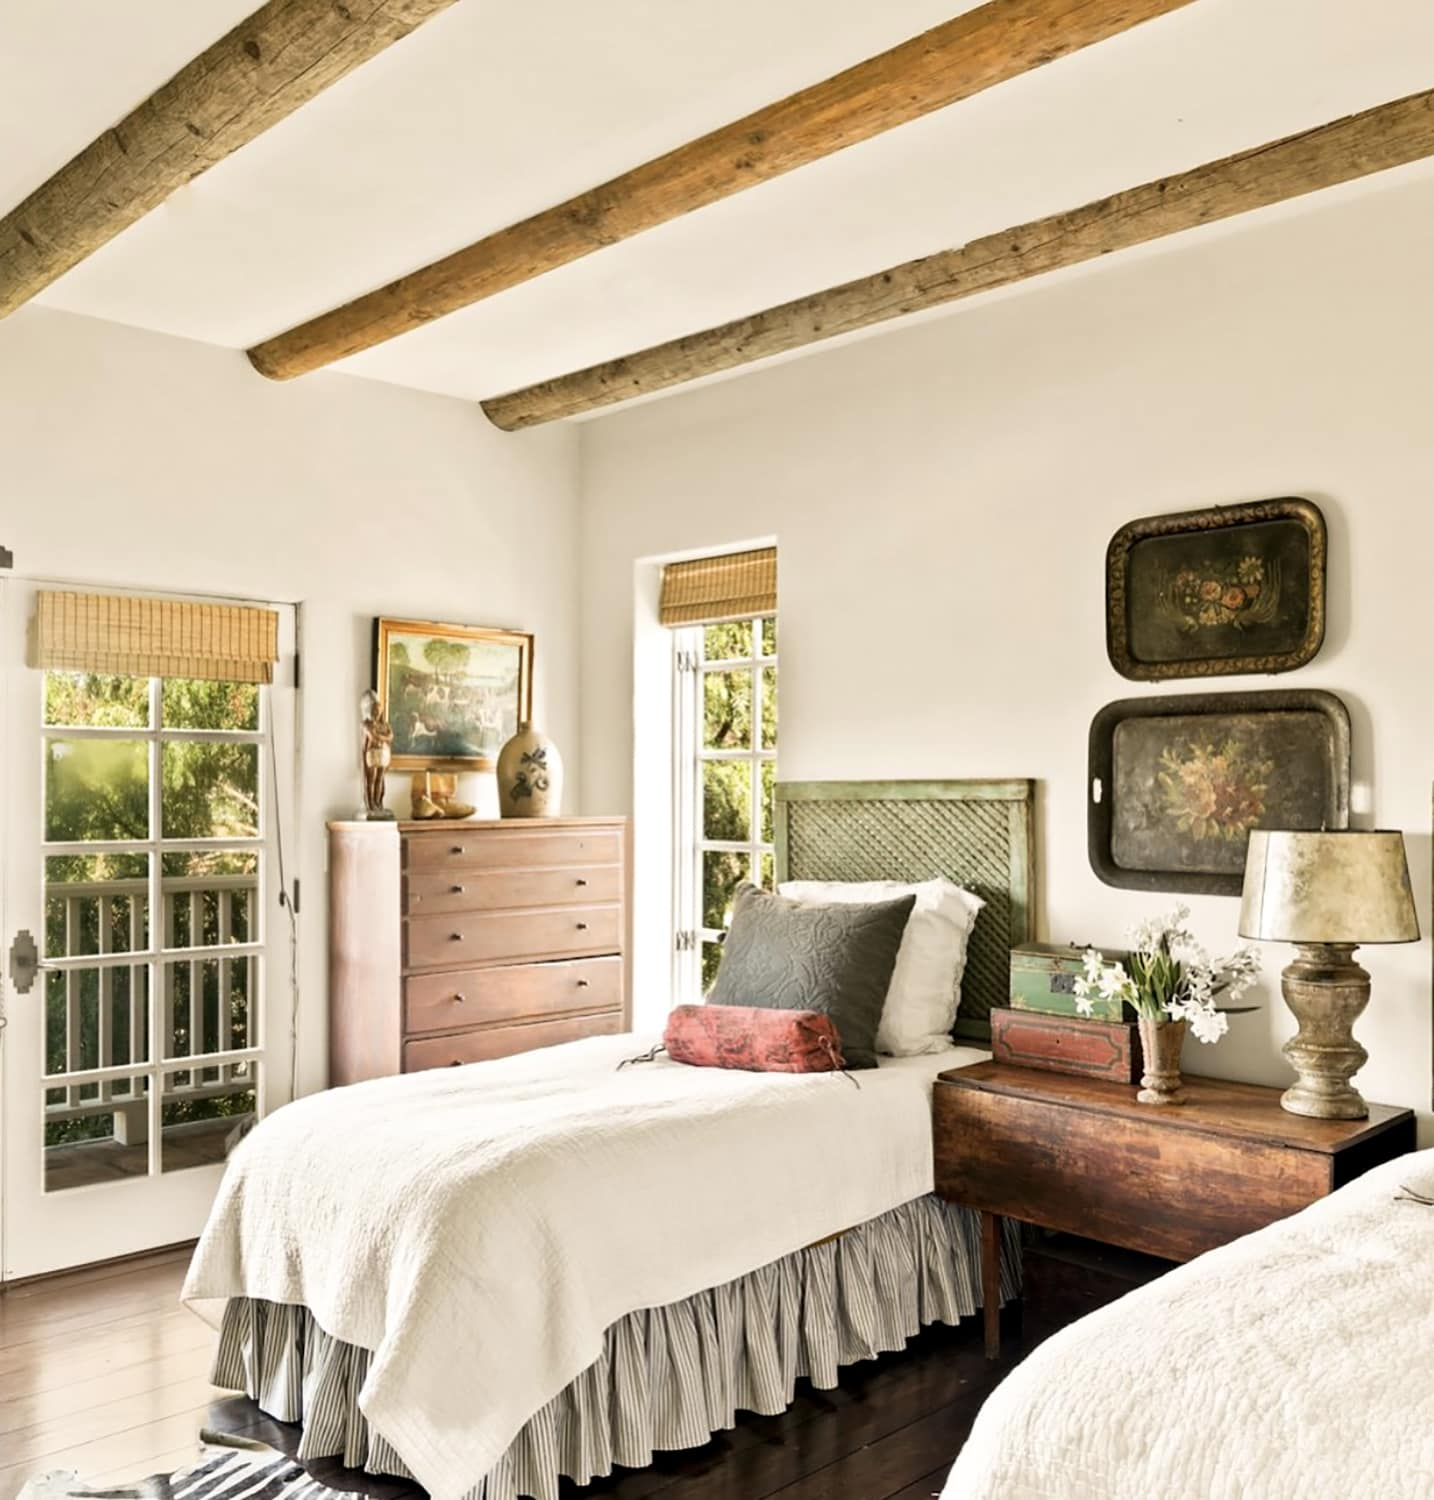 cindy hattersley's guest room in her spanish colonial home